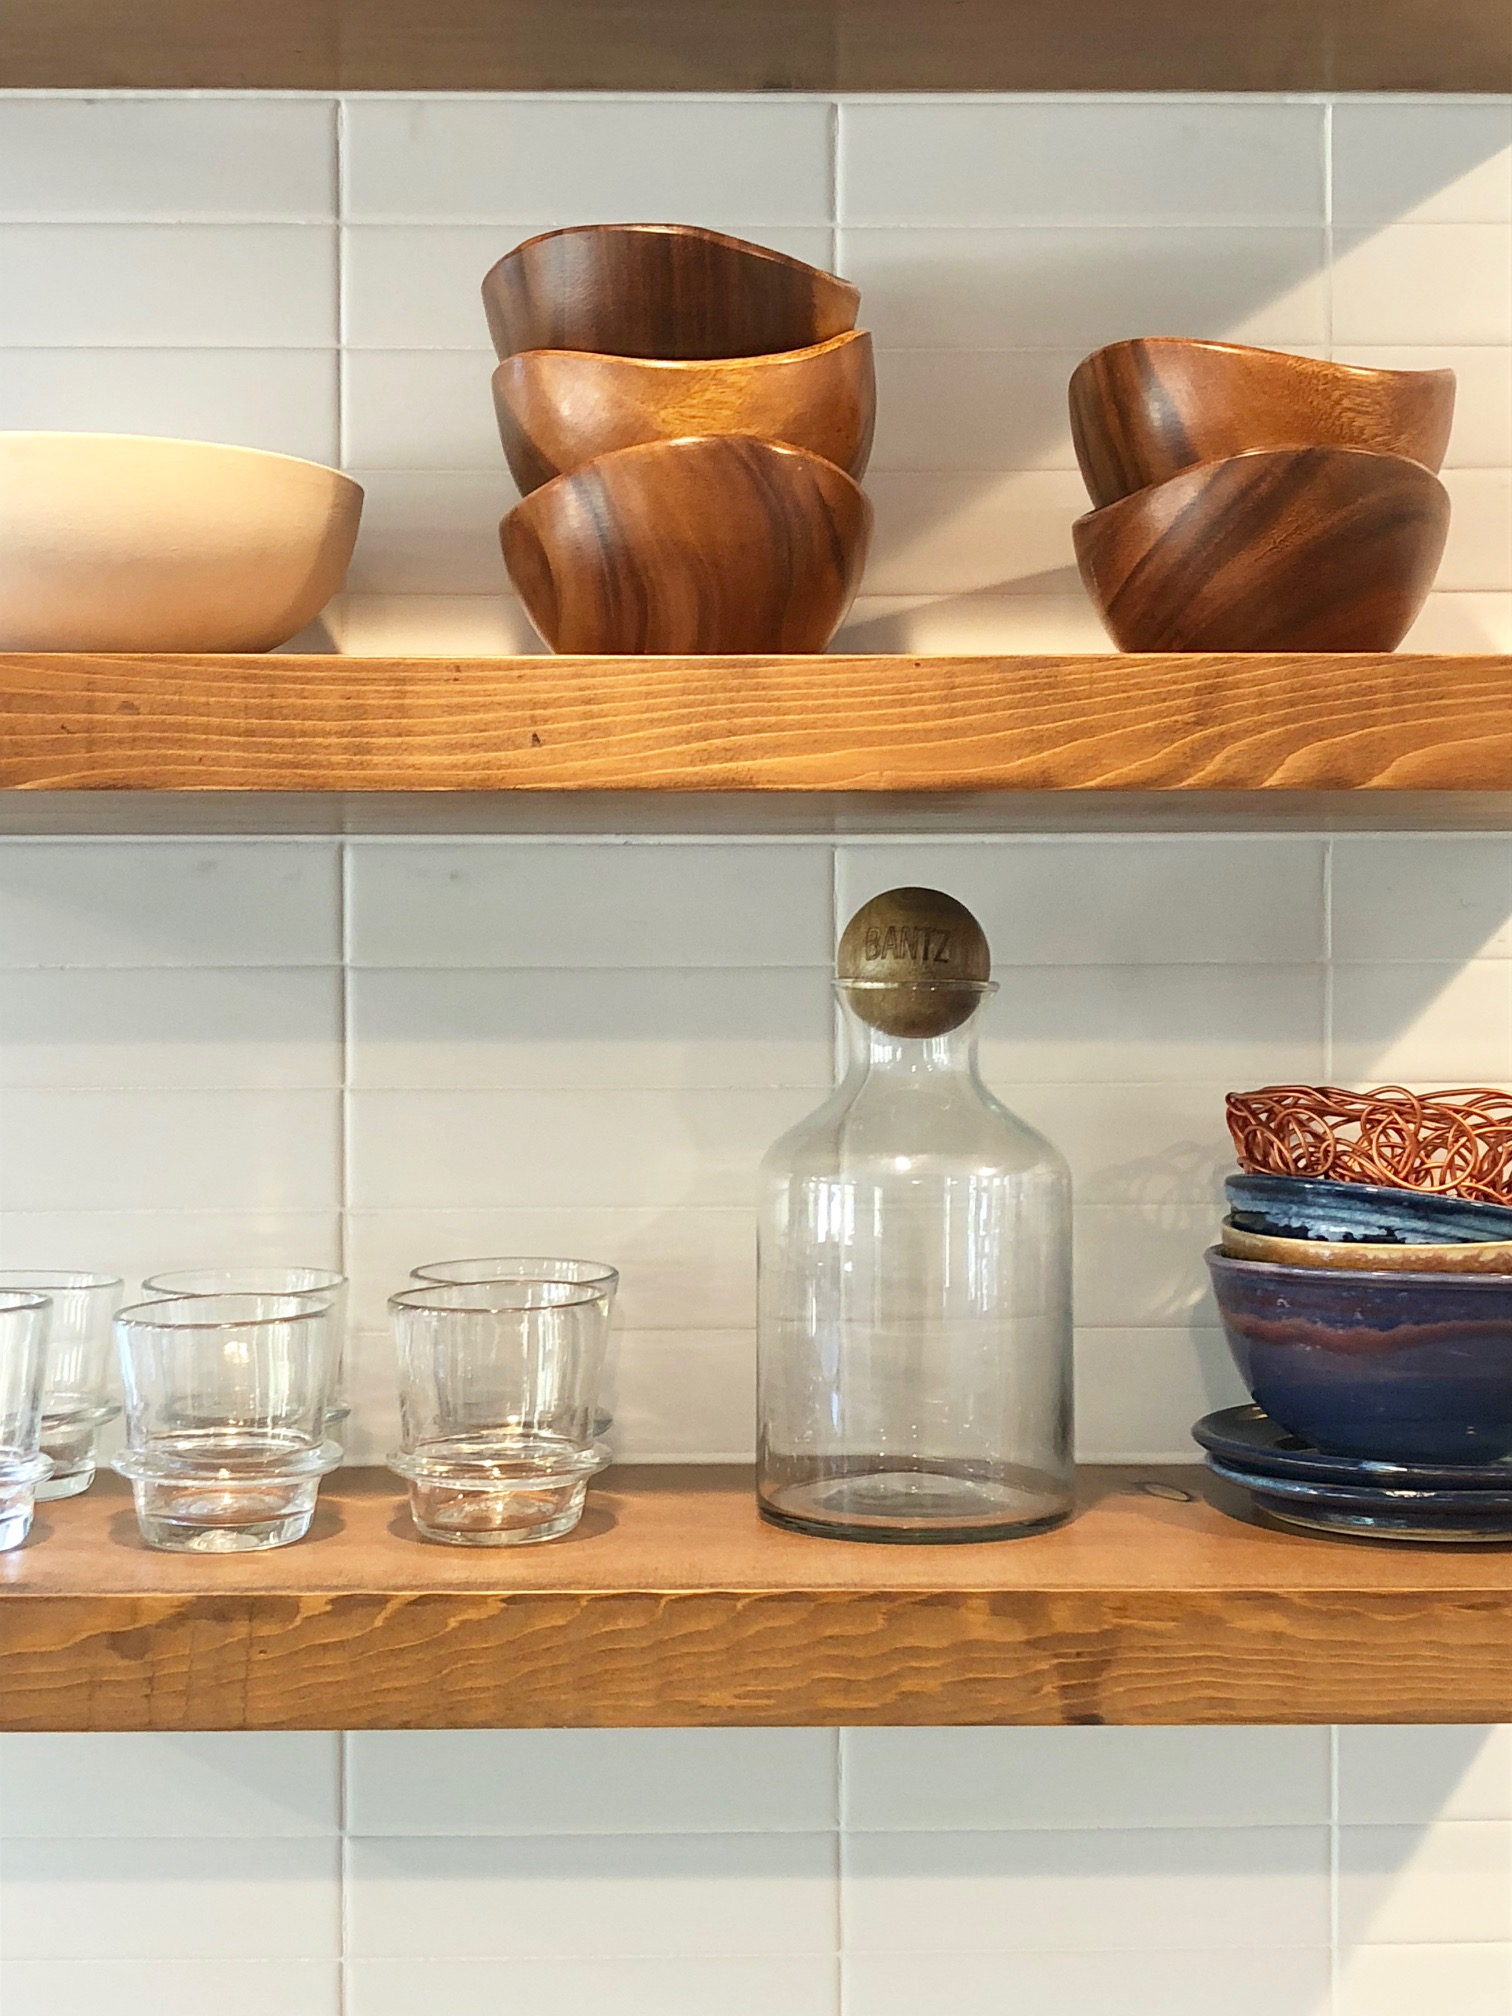 DITCH THOSE UPPERS - A lot of time and energy during a remodel is put towards opening up a kitchen and making a living space feel more open and connected. A simple way do achieve this feel, if you have a limited budget, or even if you don't, is to ditch the existing upper cabinets. There are a number of reasons why I love this trend. First off, open shelving emphasizes your backsplash and allows you to take it counter-to-ceiling. Second, it can bring in a more textured material like wood to expand your color palette. Third and most importantly, it forces you to take a look at your dishware and decide what you love and want to display. Surprisingly you'll start using things you might not have, more often because they're so easily accessible.California Sawdust is a local company that fabricates custom wood furniture and home decor with a clean rustic sensibility.